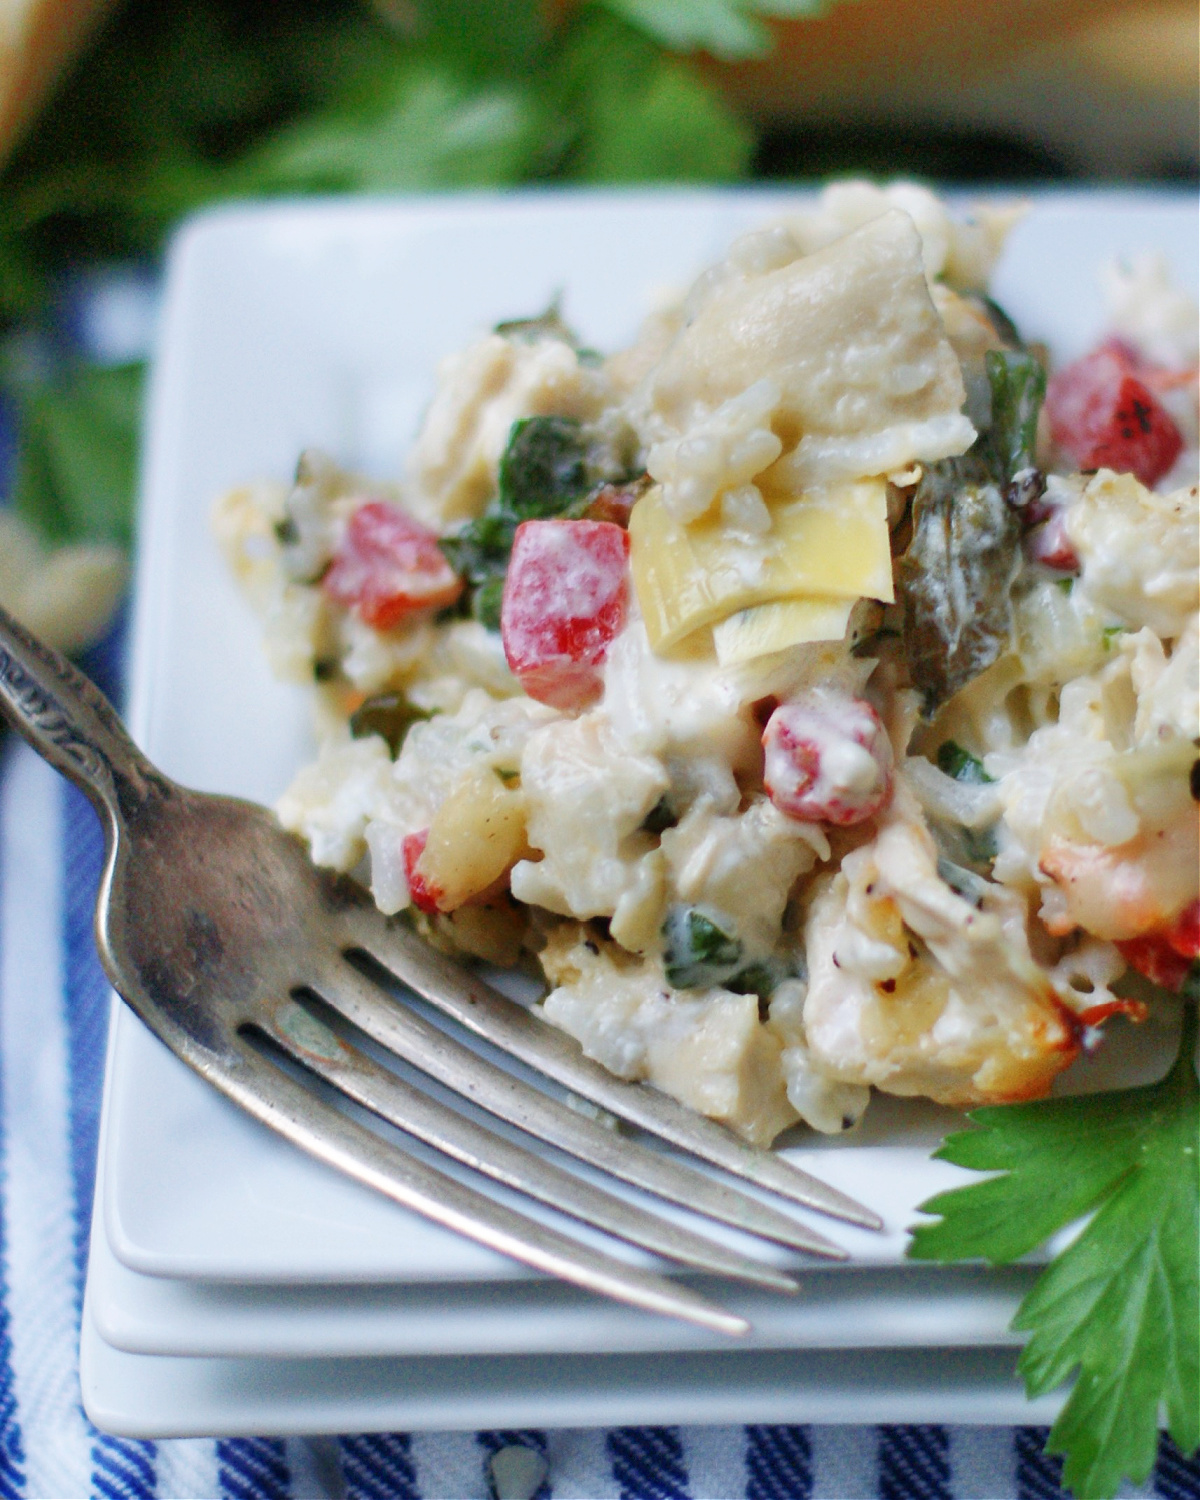 up close of a serving of spinach artichoke chicken casserole to show ingredients and texture